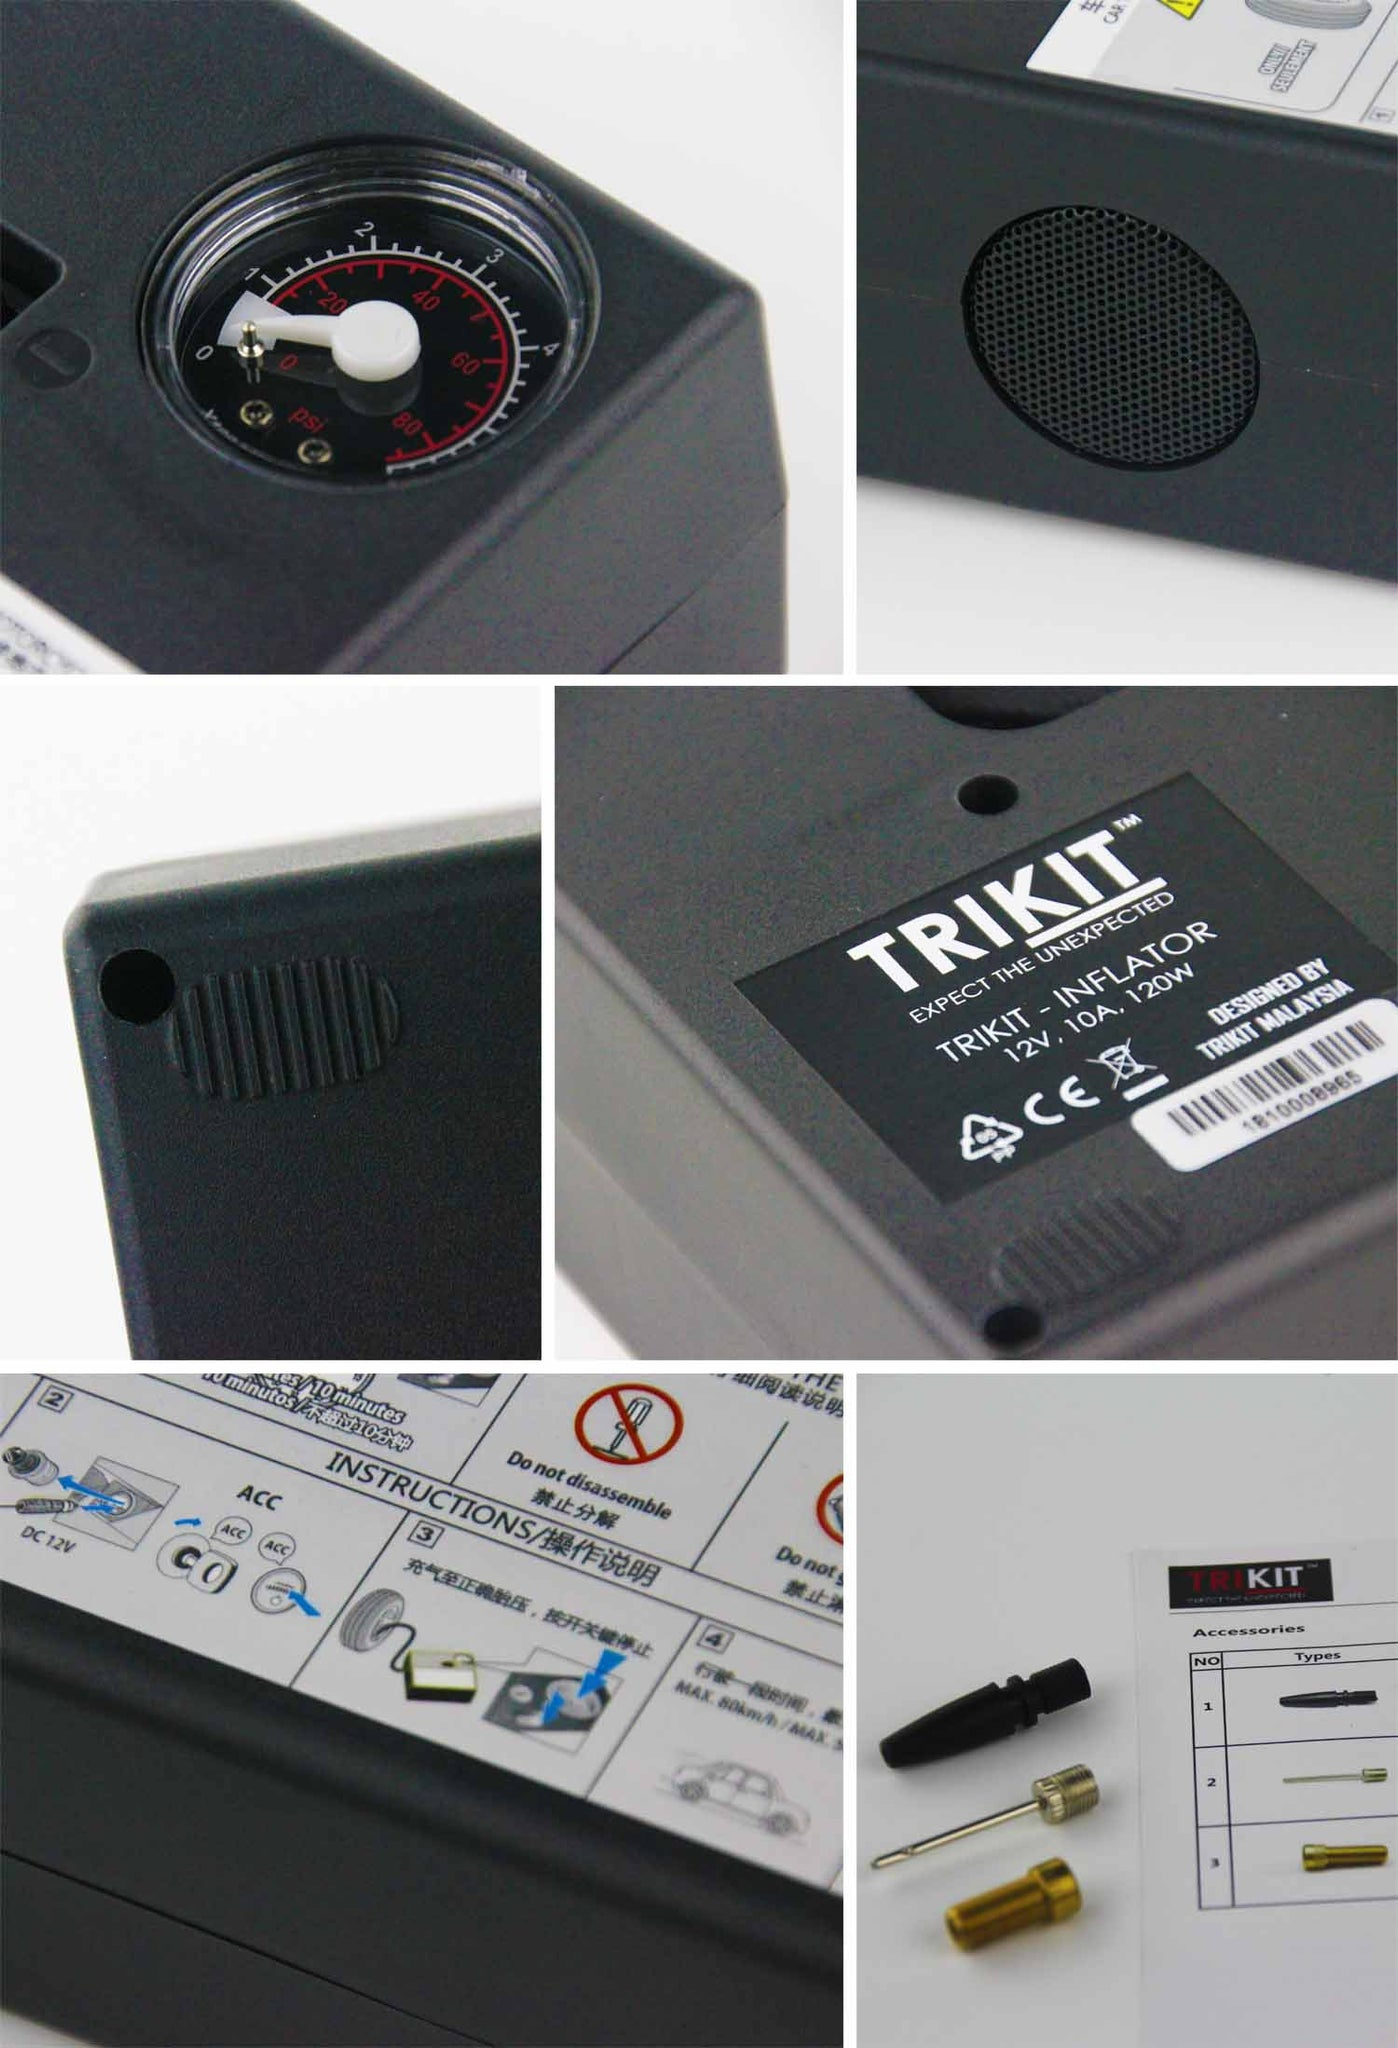 TRIKIT AIRTIRE PORTABLE ELECTRIC TIRE INFLATOR